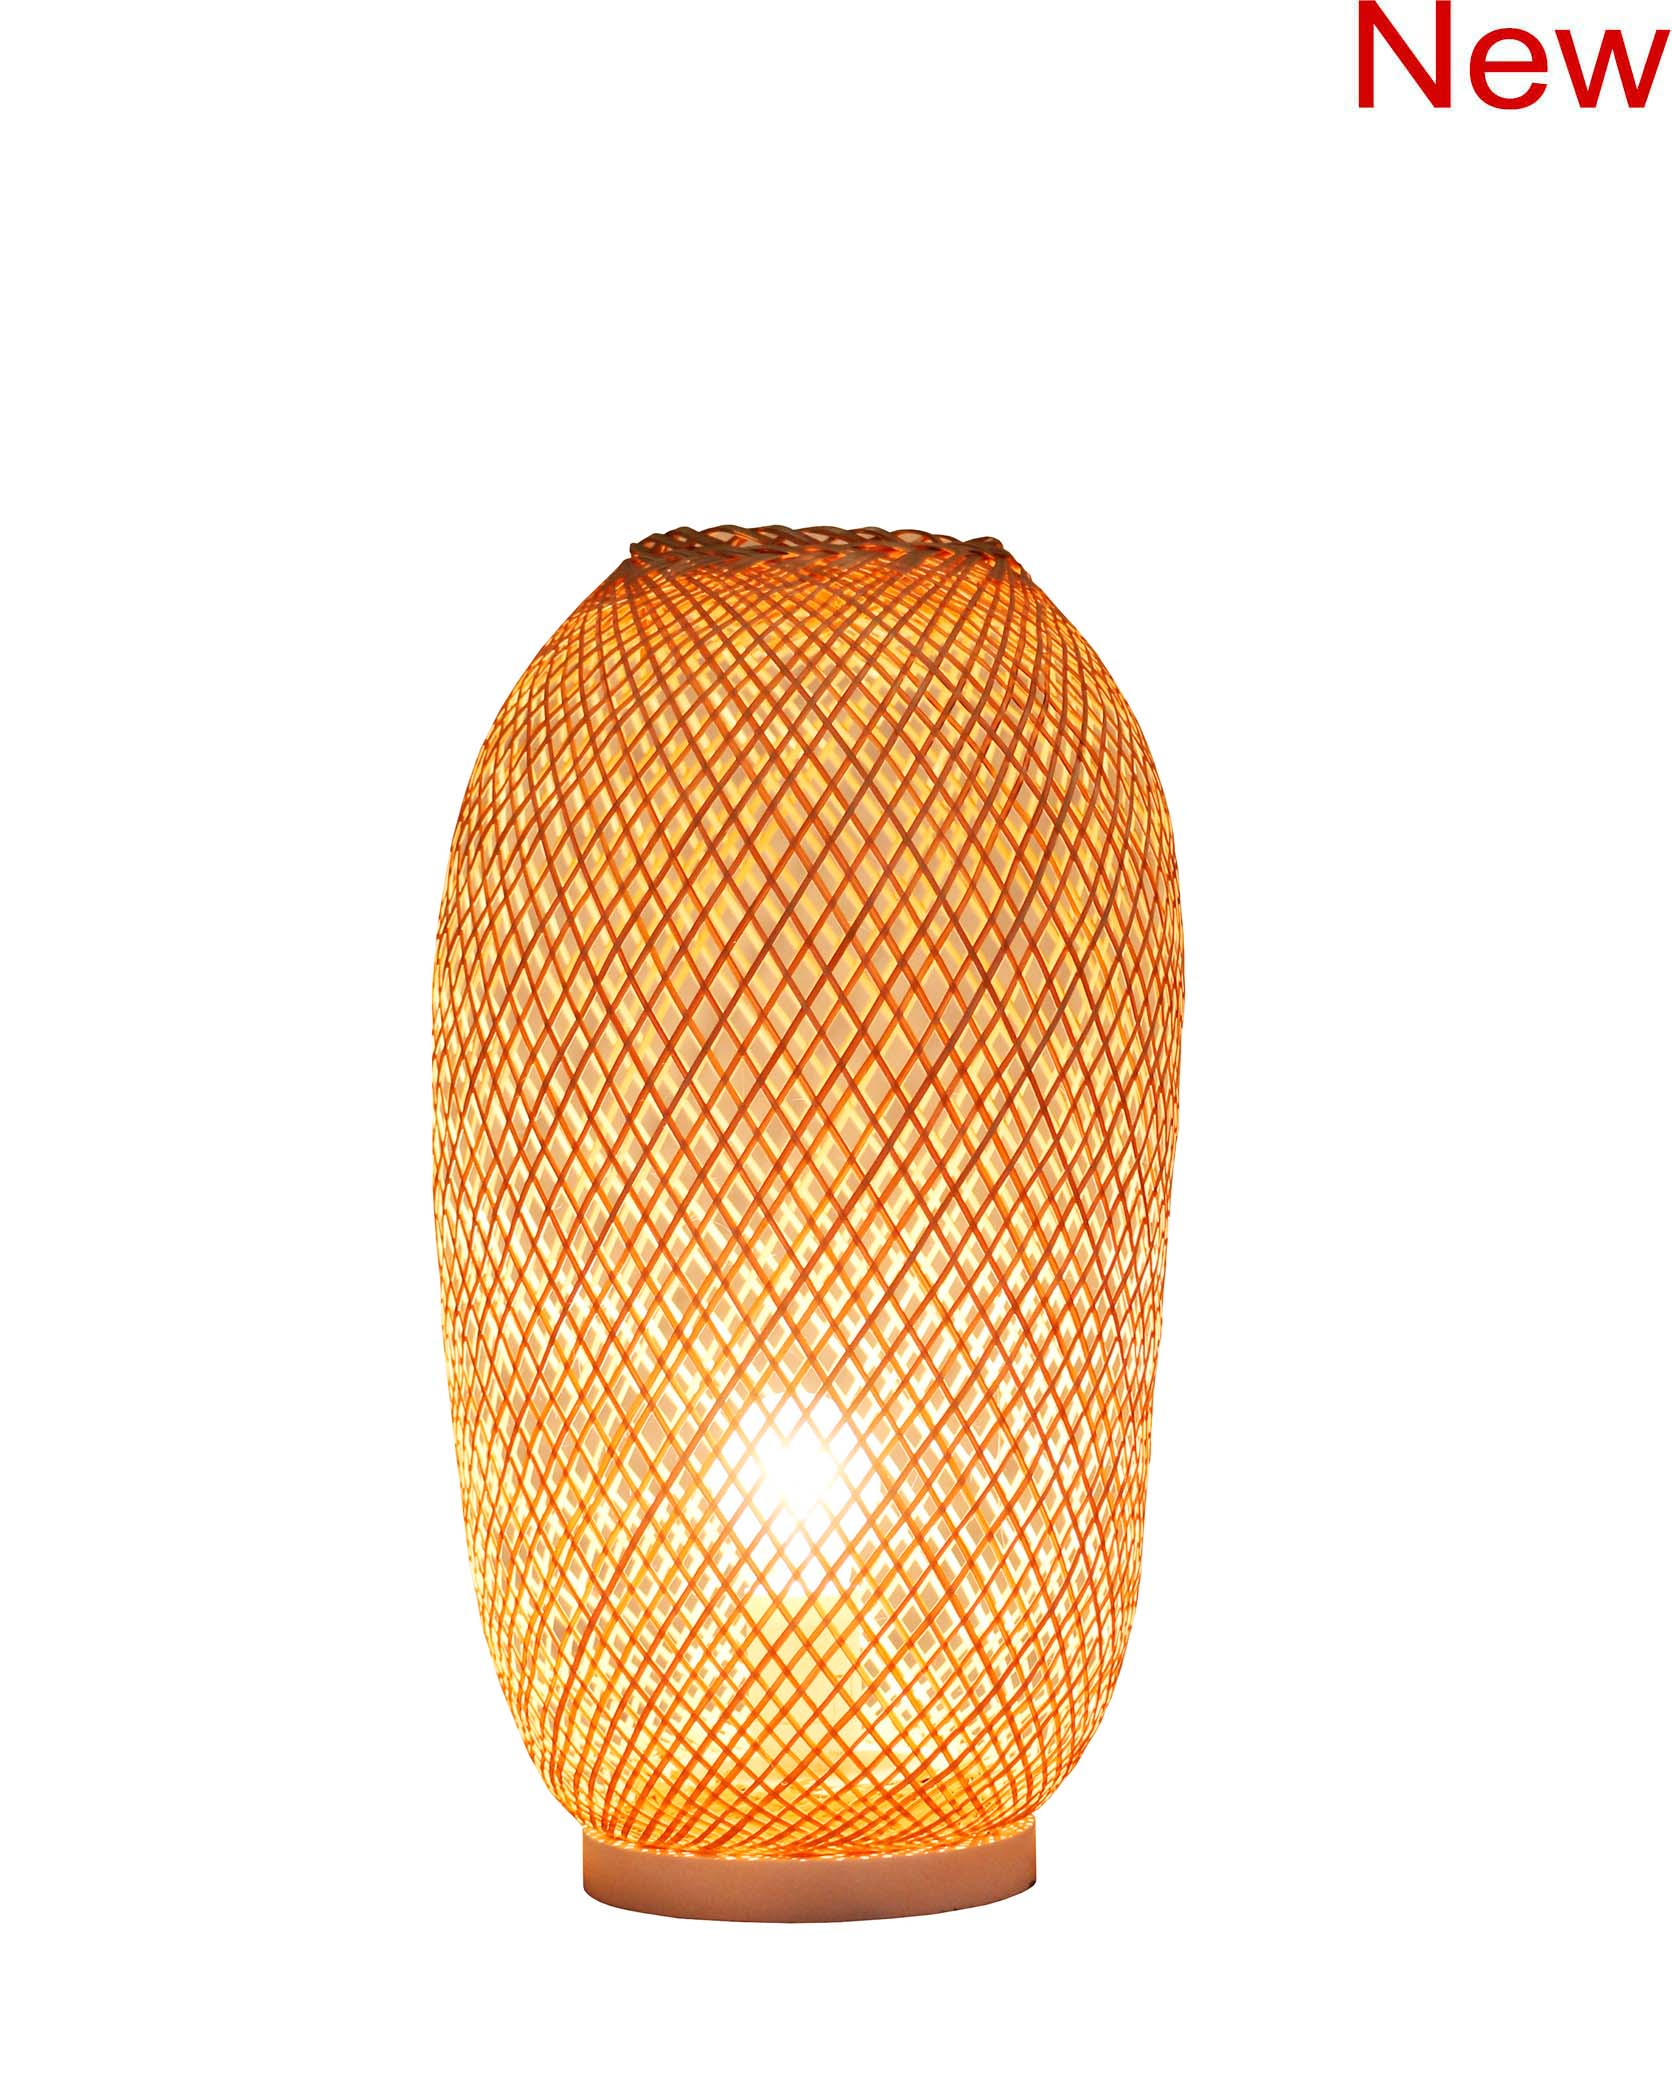 Bamboo Nest table lamp product photo #3